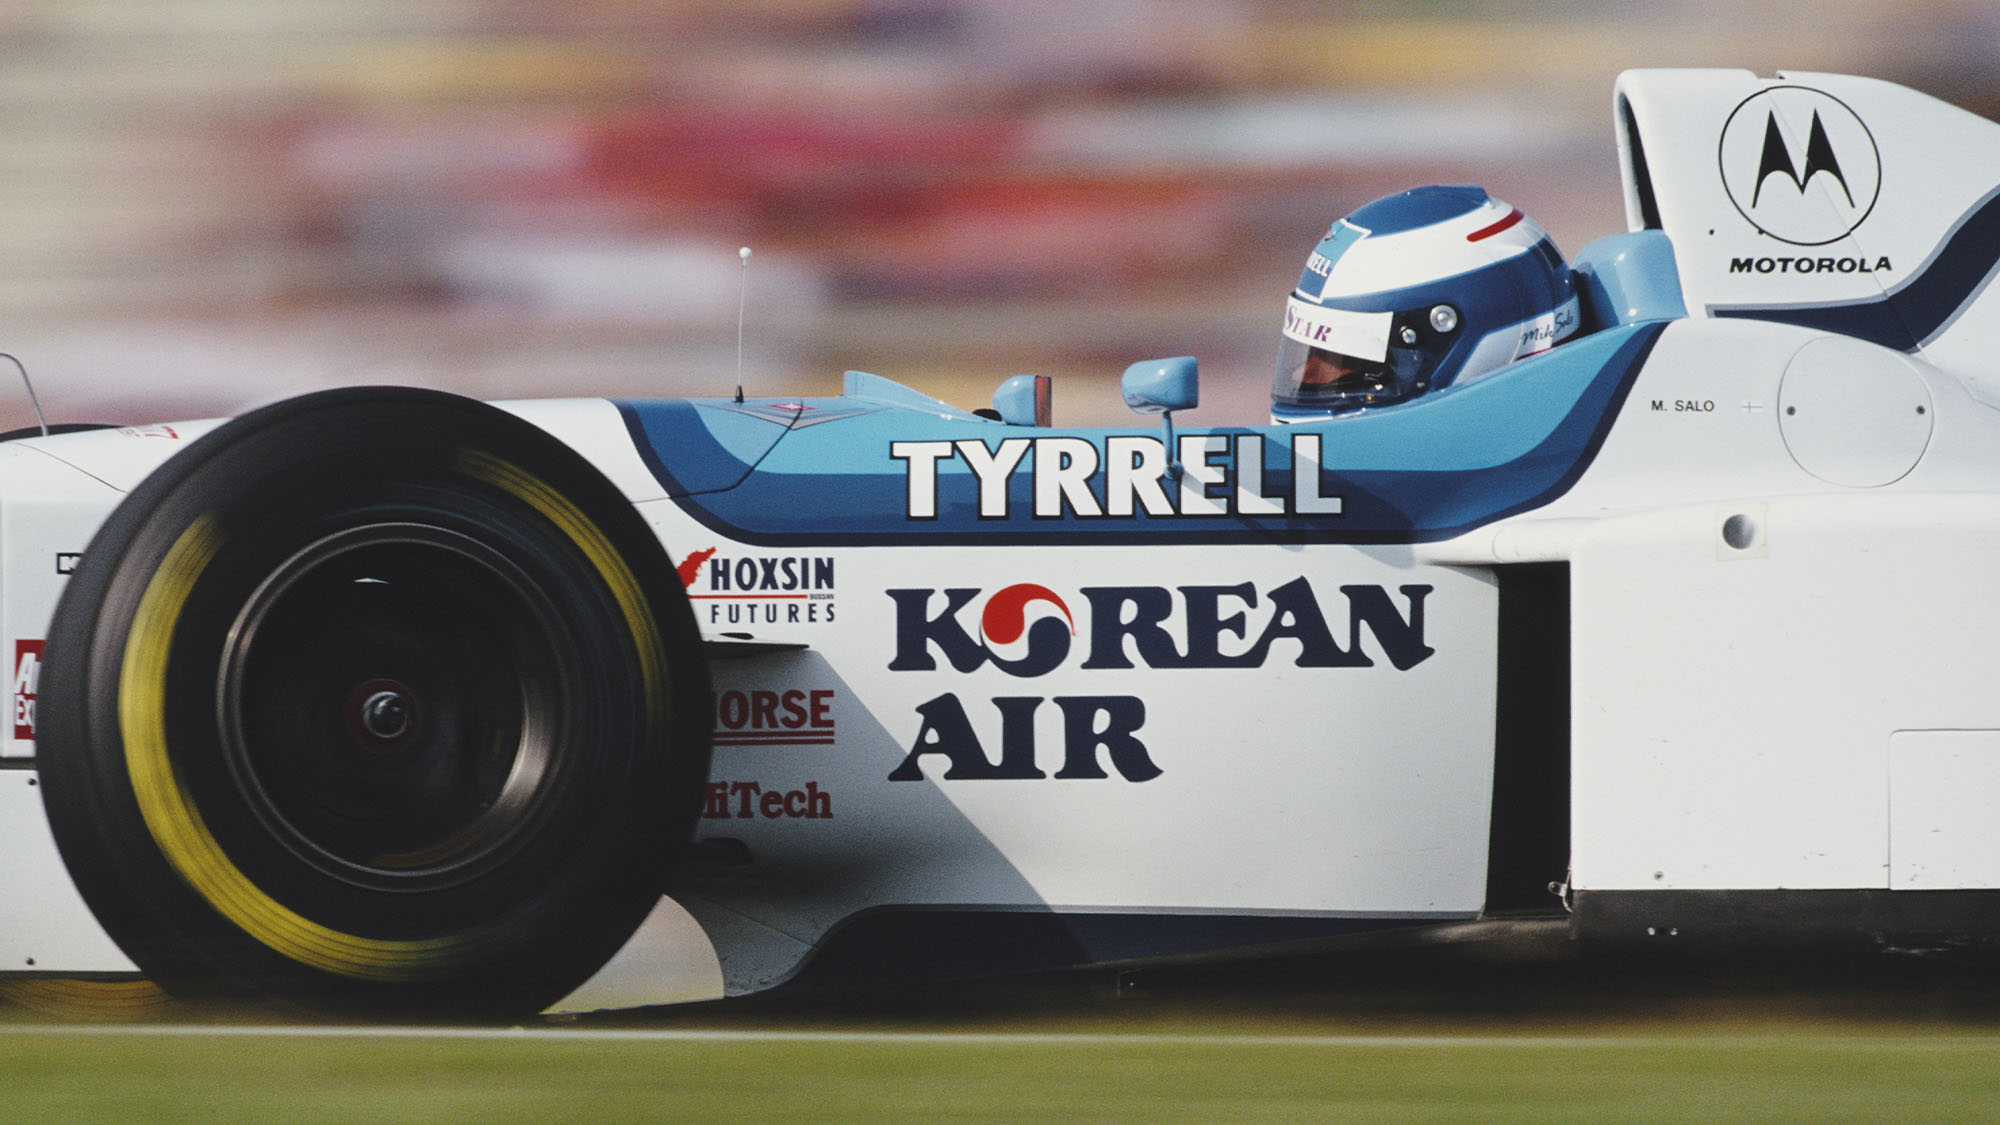 Mika Salo of Finland drives the #19 Tyrrell 024 Yamaha V10 during the Formula One German Grand Prix on 28 July 1996 at the Hockenheimring, Hockenheim, Germany. (Photo by Darren Heath/Getty Images)